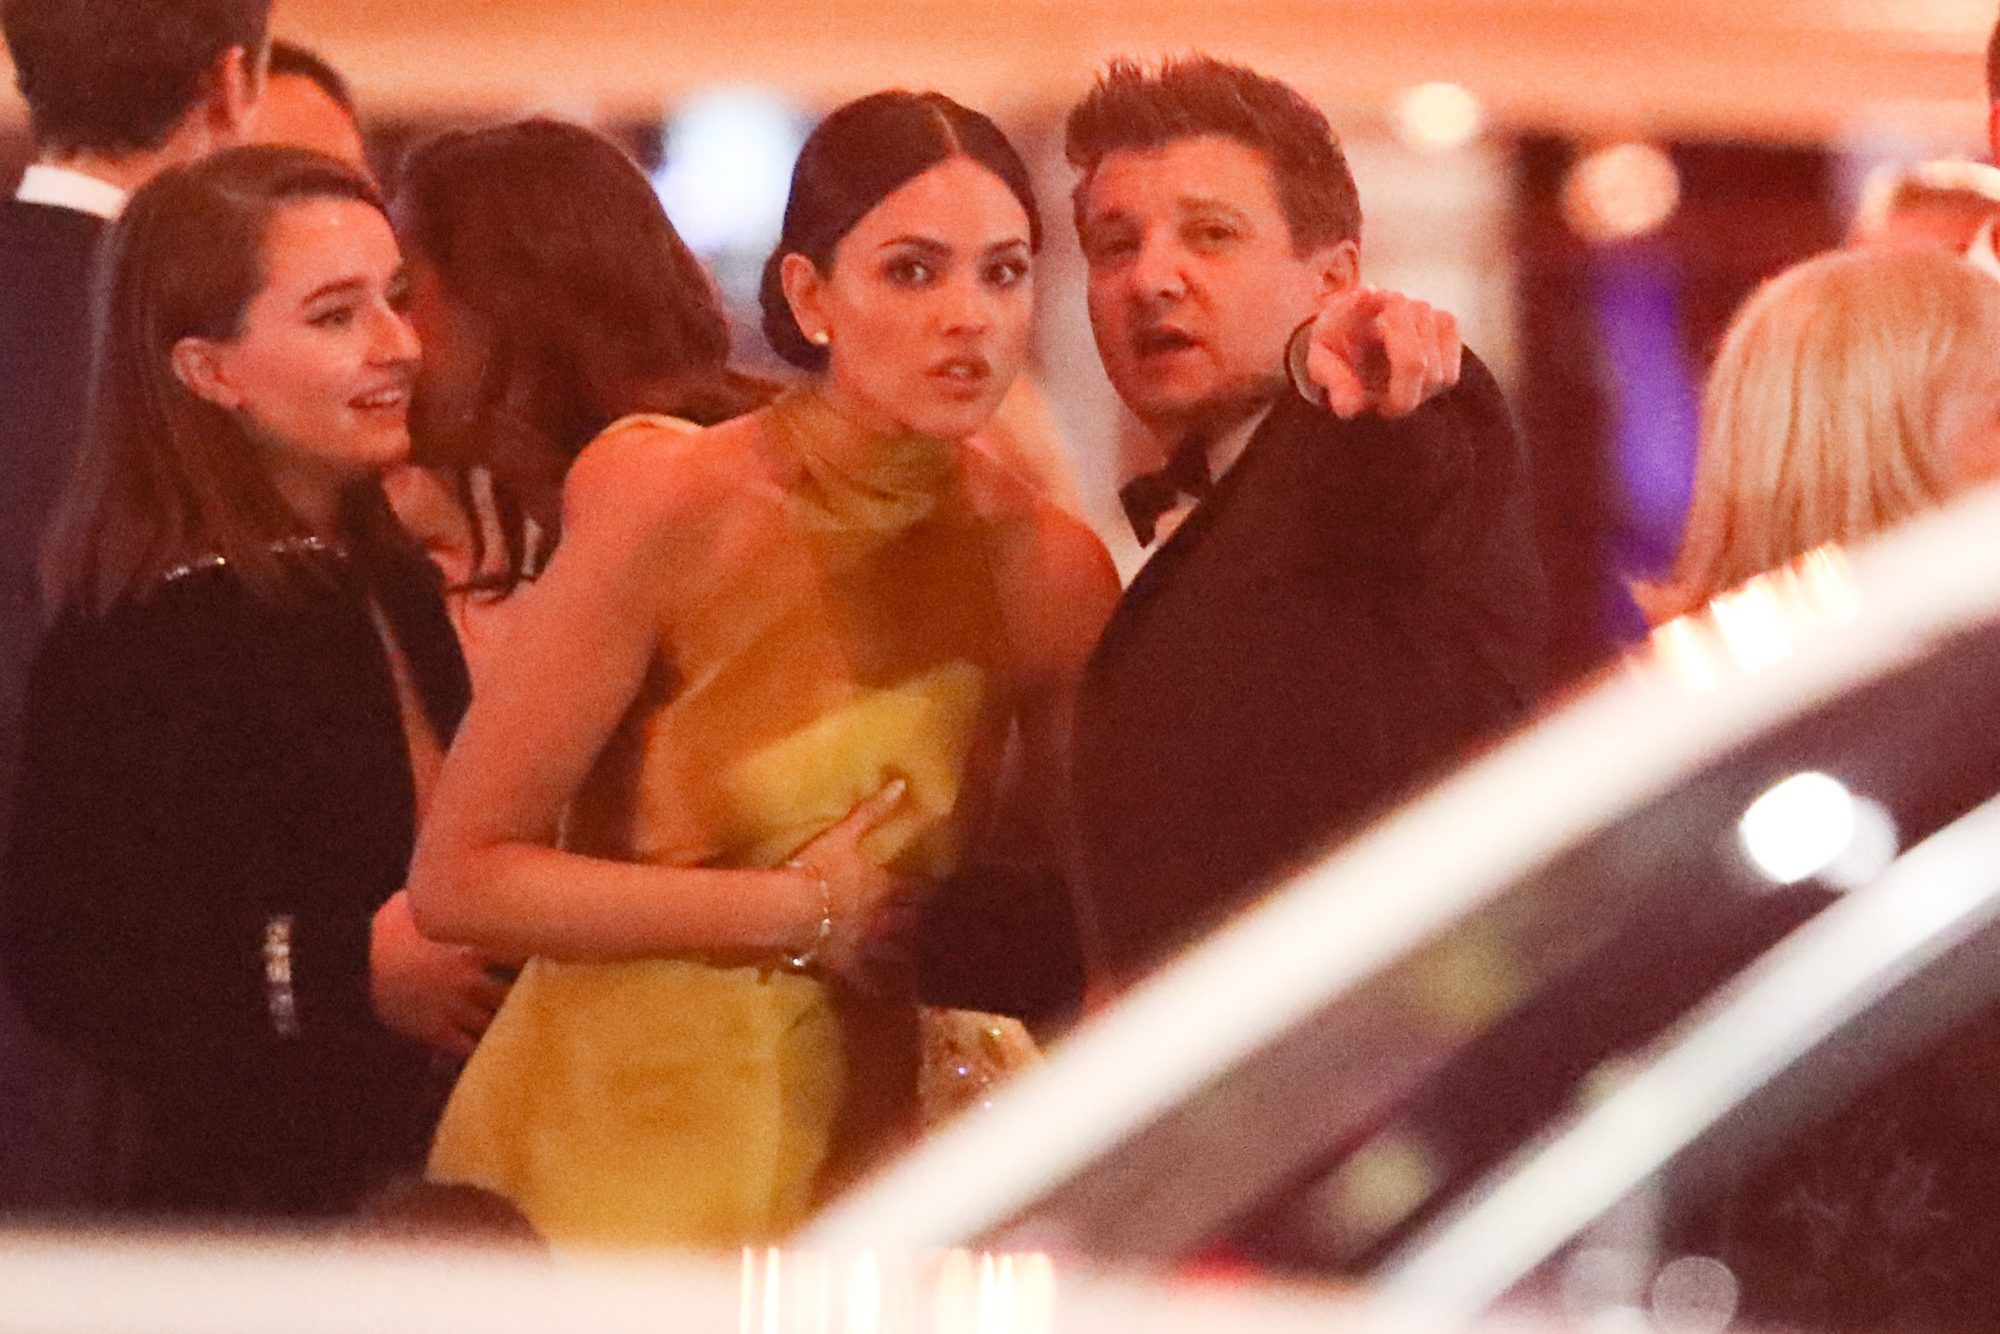 eremy Renner is seen holding Eiza Gonzalez arm as they both left the Vanity Fair Oscar party together